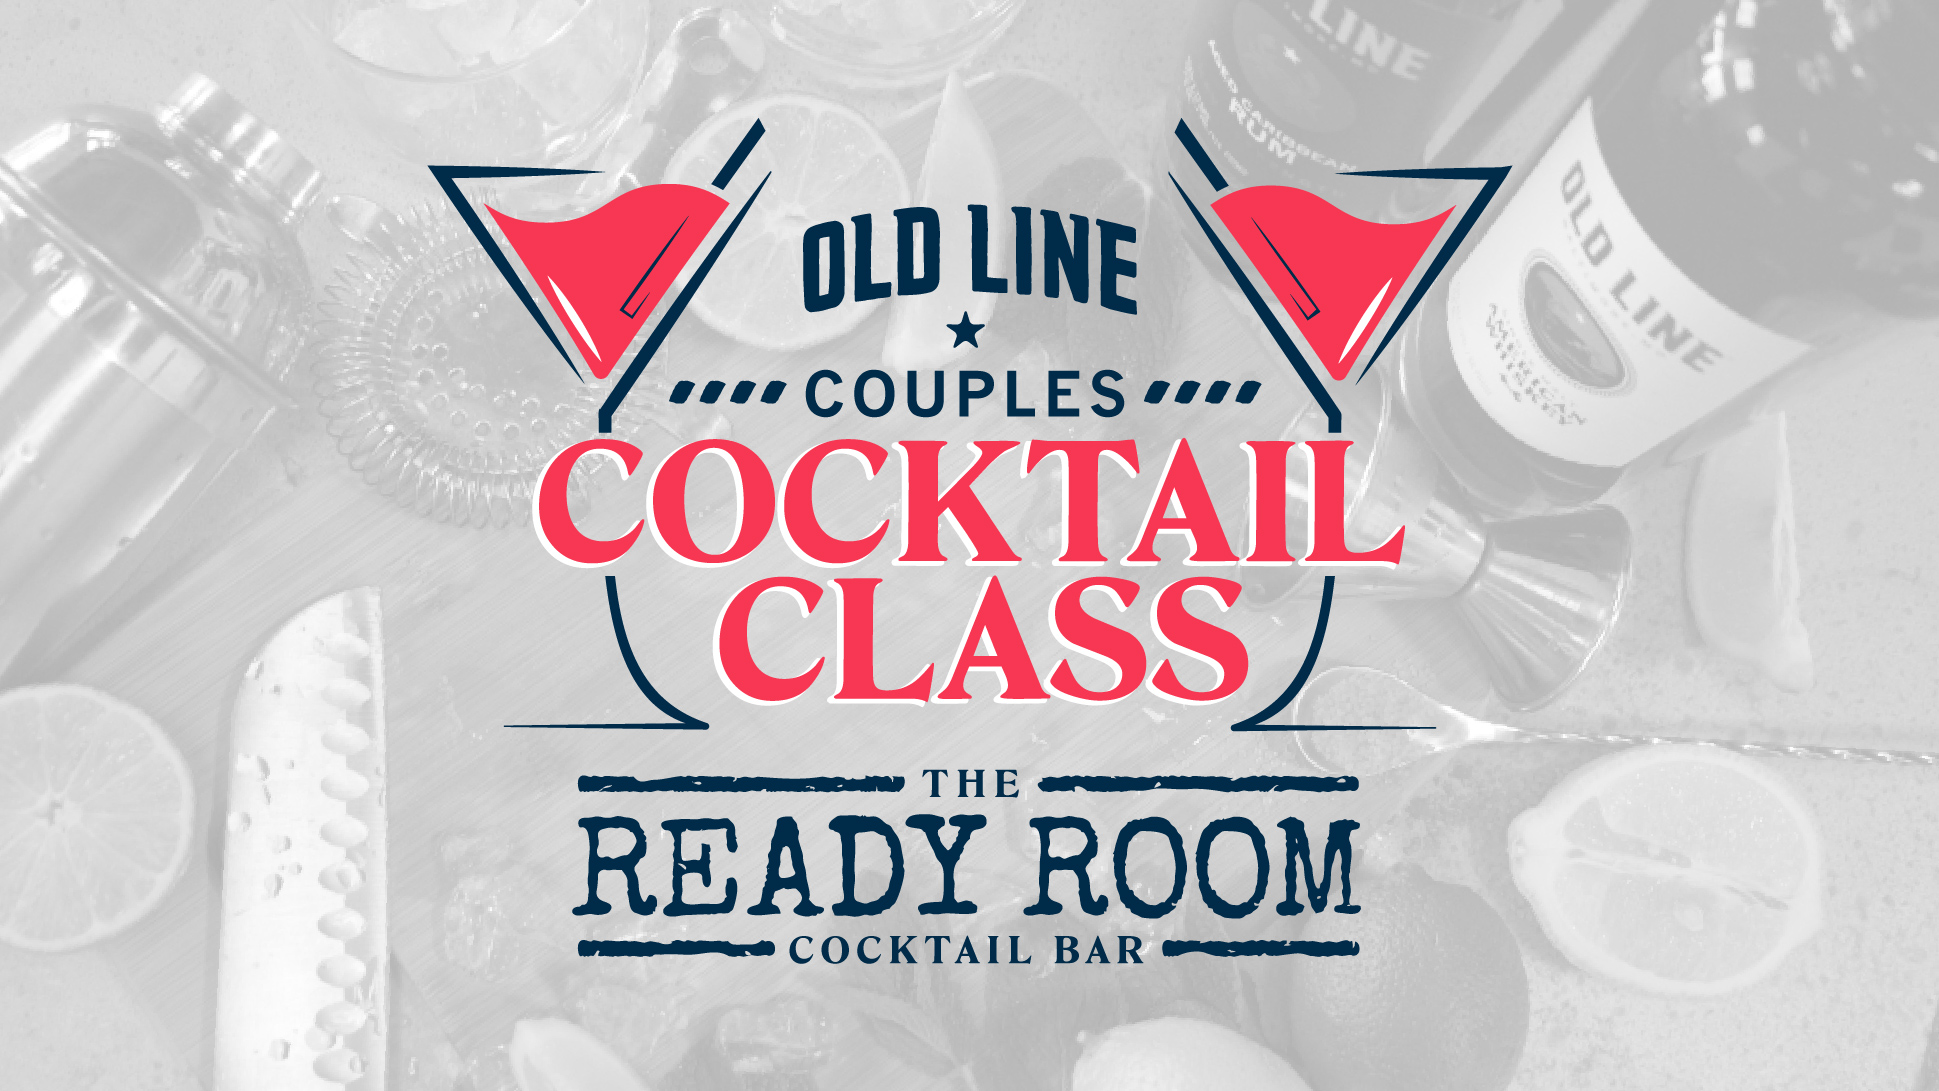 Old Line Couples Cocktail Class